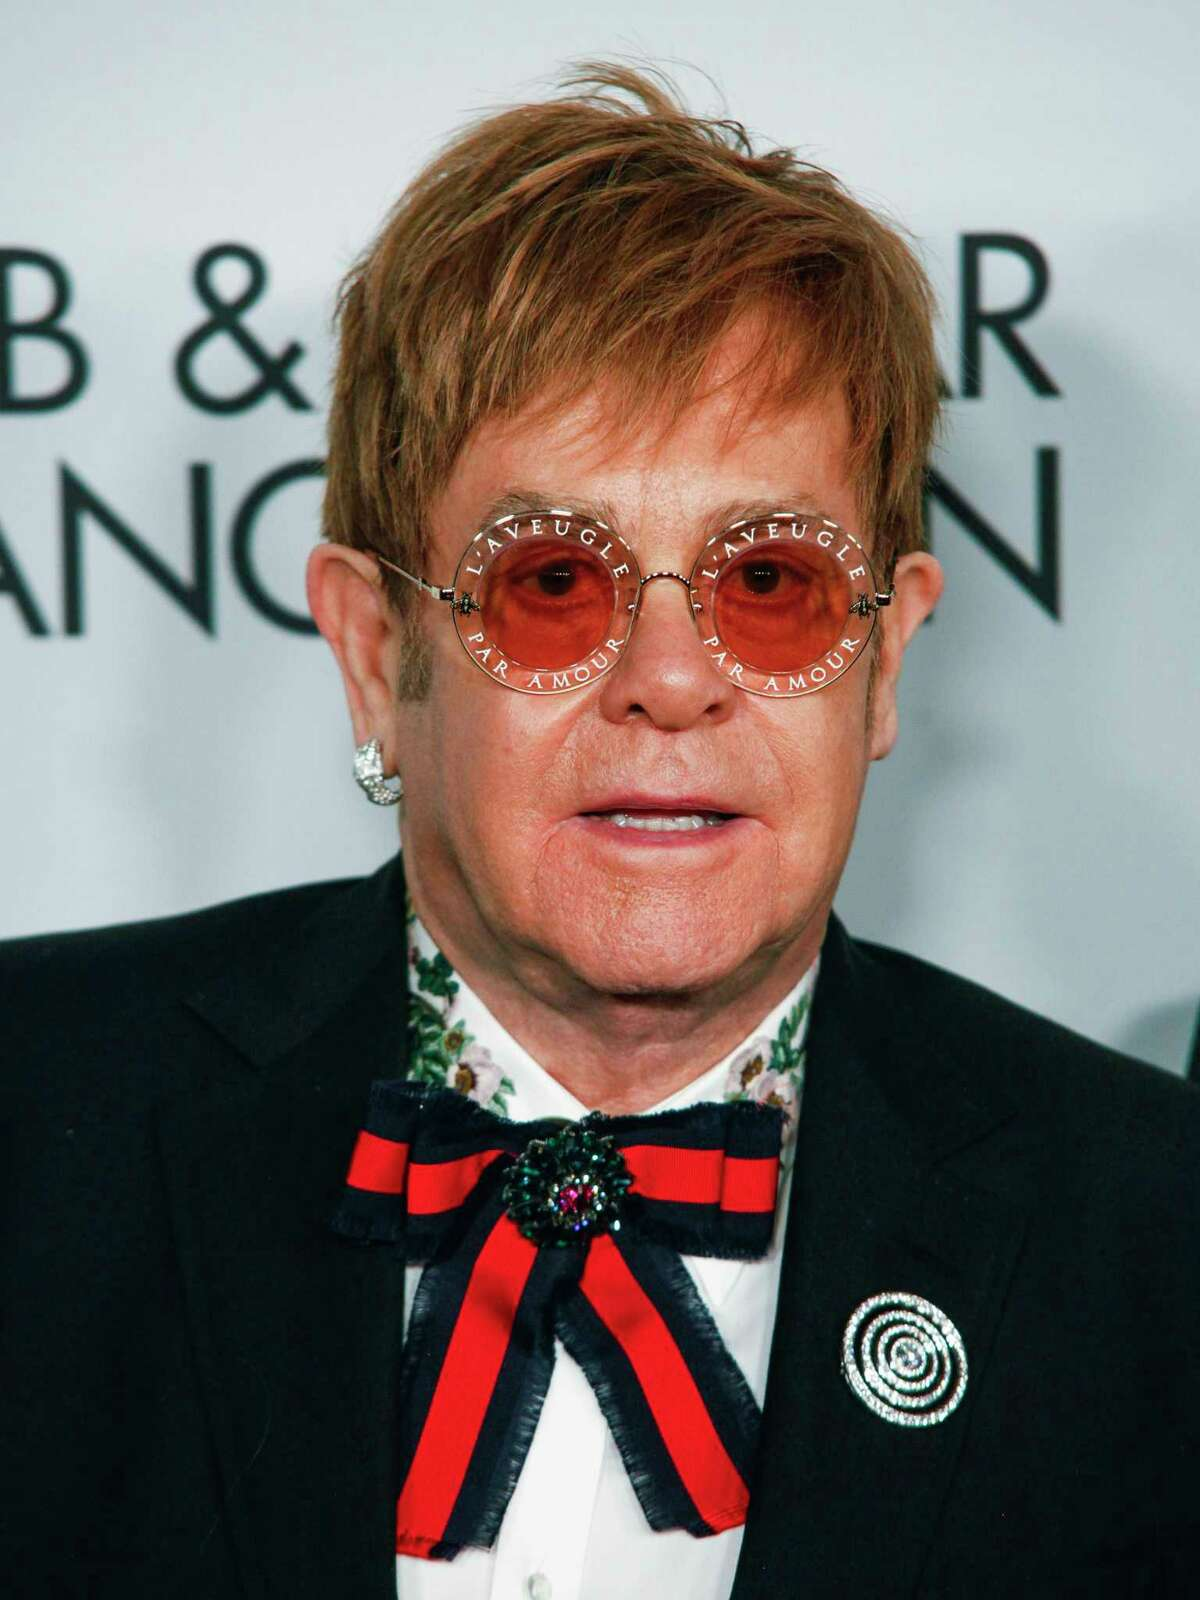 Elton John attends the Elton John AIDS Foundation's 25th Anniversary Gala at The Cathedral of St. John the Divine on Tuesday, Nov. 7, 2017, in New York. (Photo by Andy Kropa/Invision/AP) ORG XMIT: NYAK108